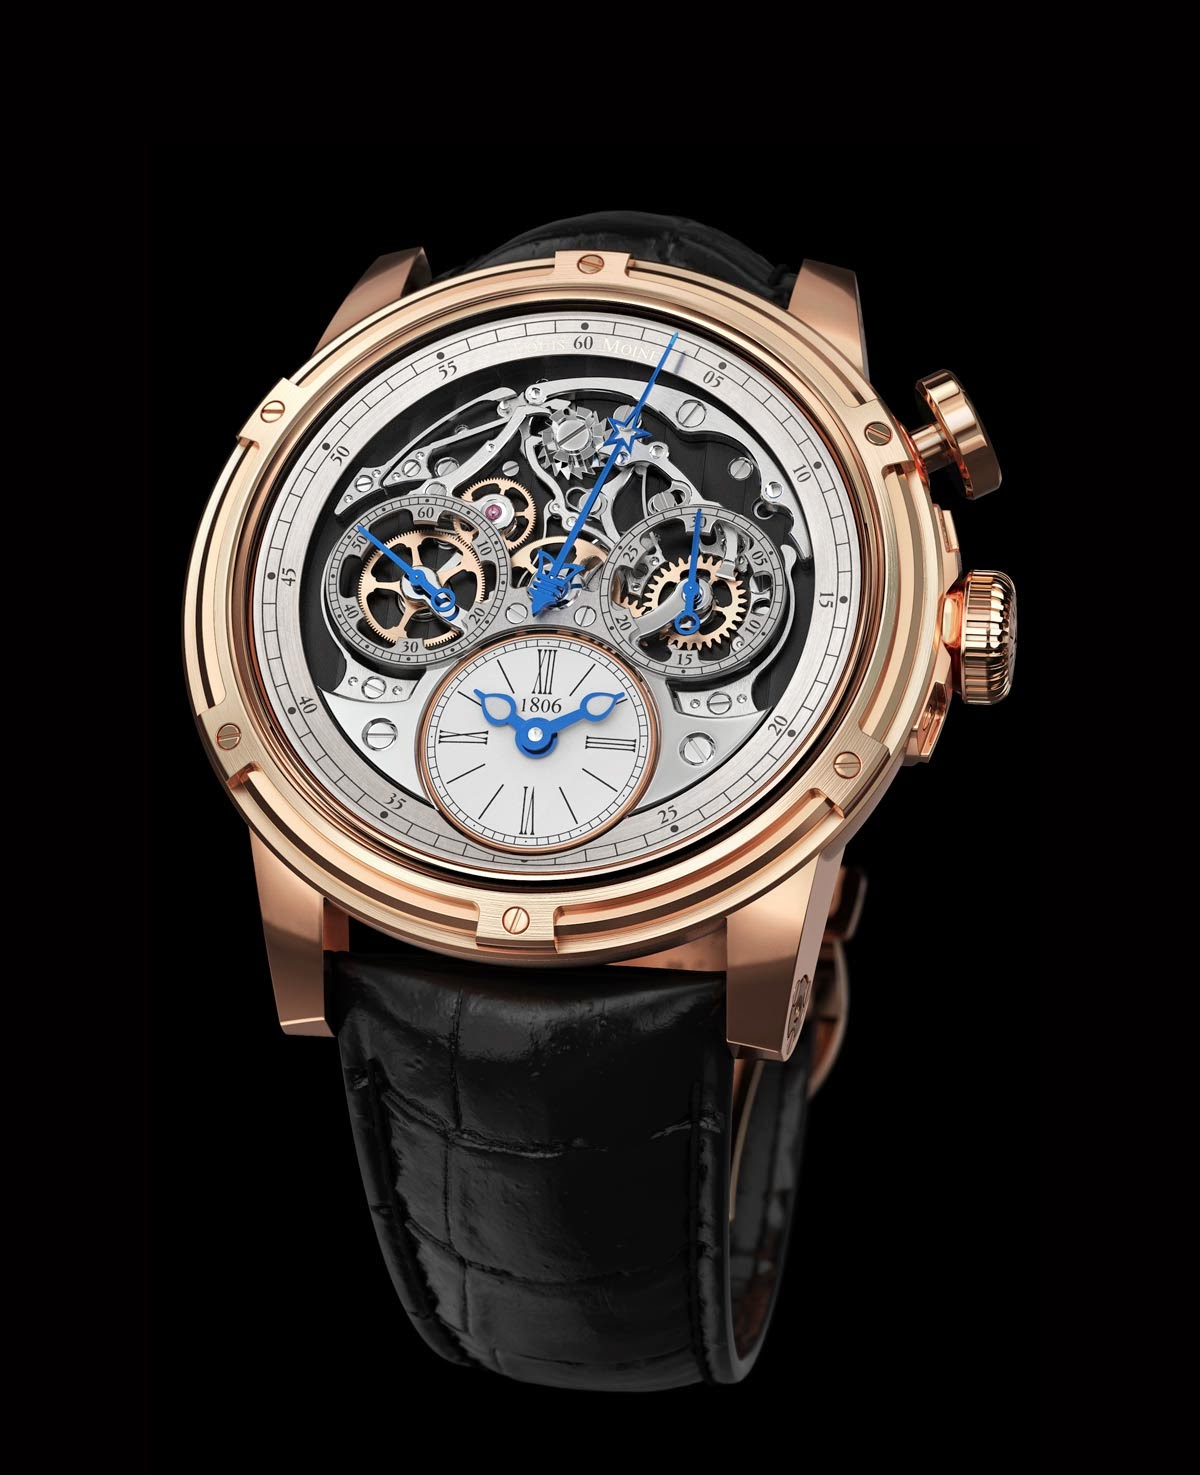 Louis moinet memoris time and watches for Louis moinet watch